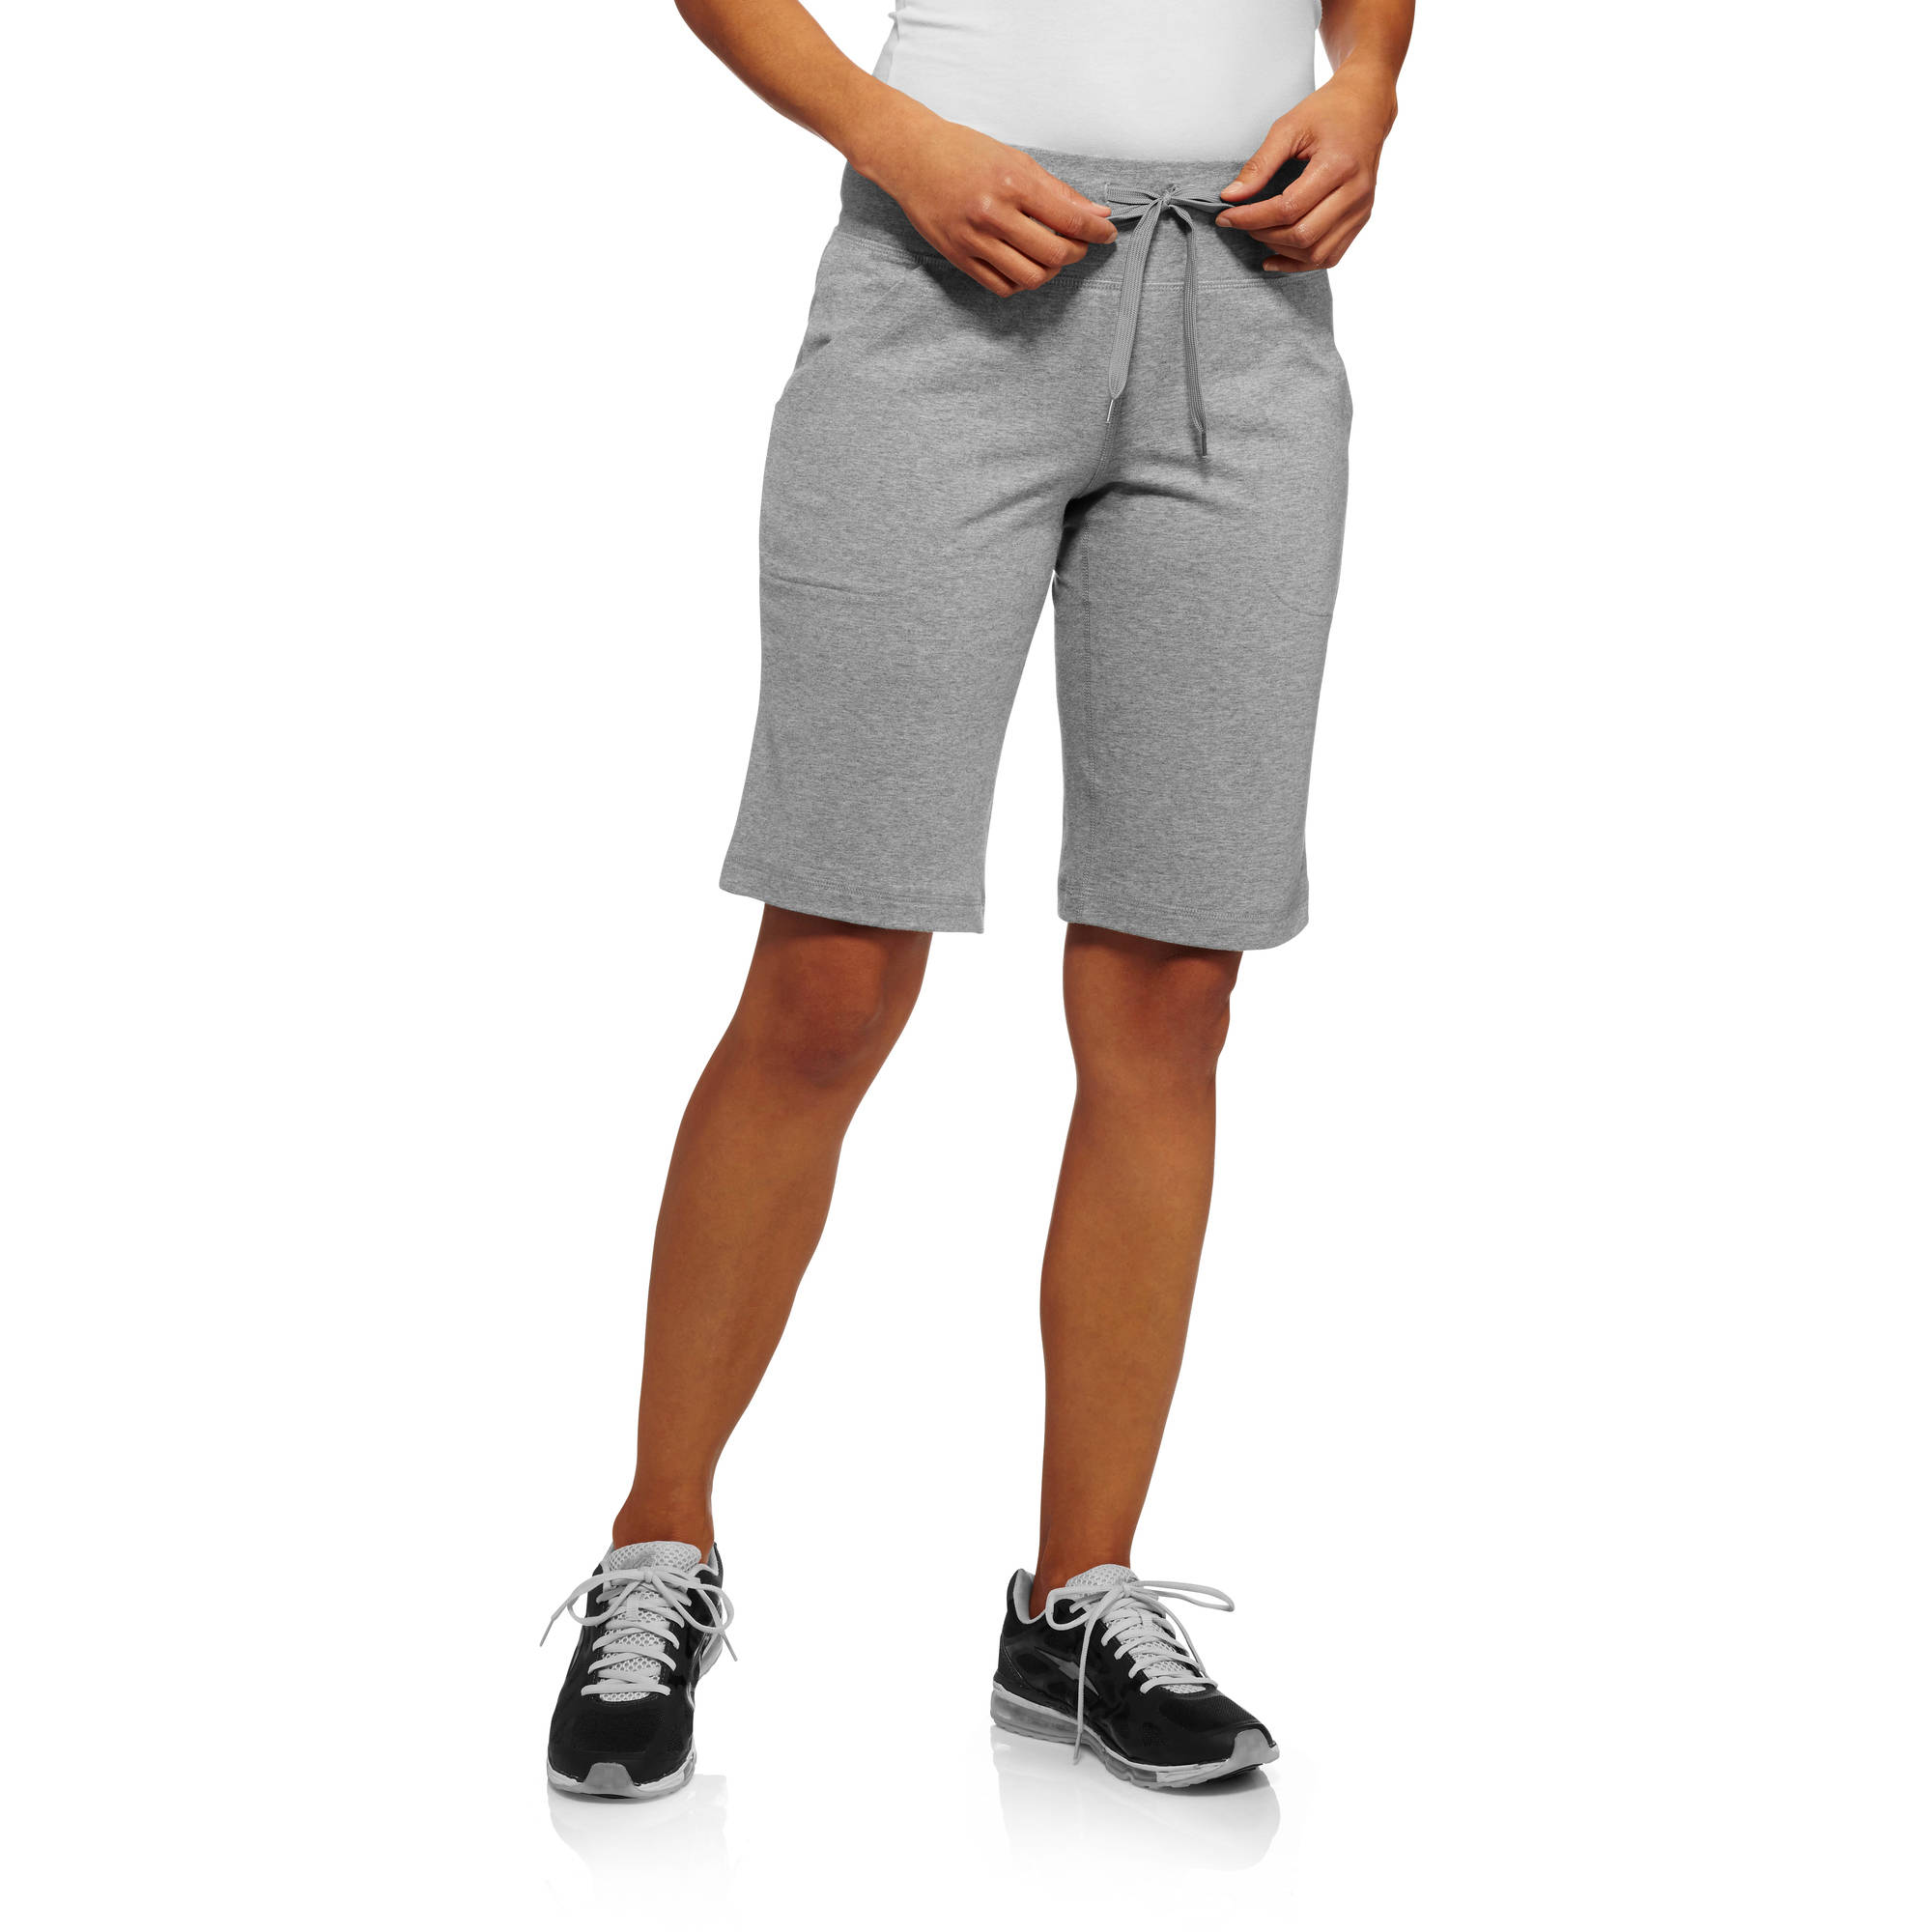 "Danskin Now Women's Dri-More 12"" Bermuda Shorts"